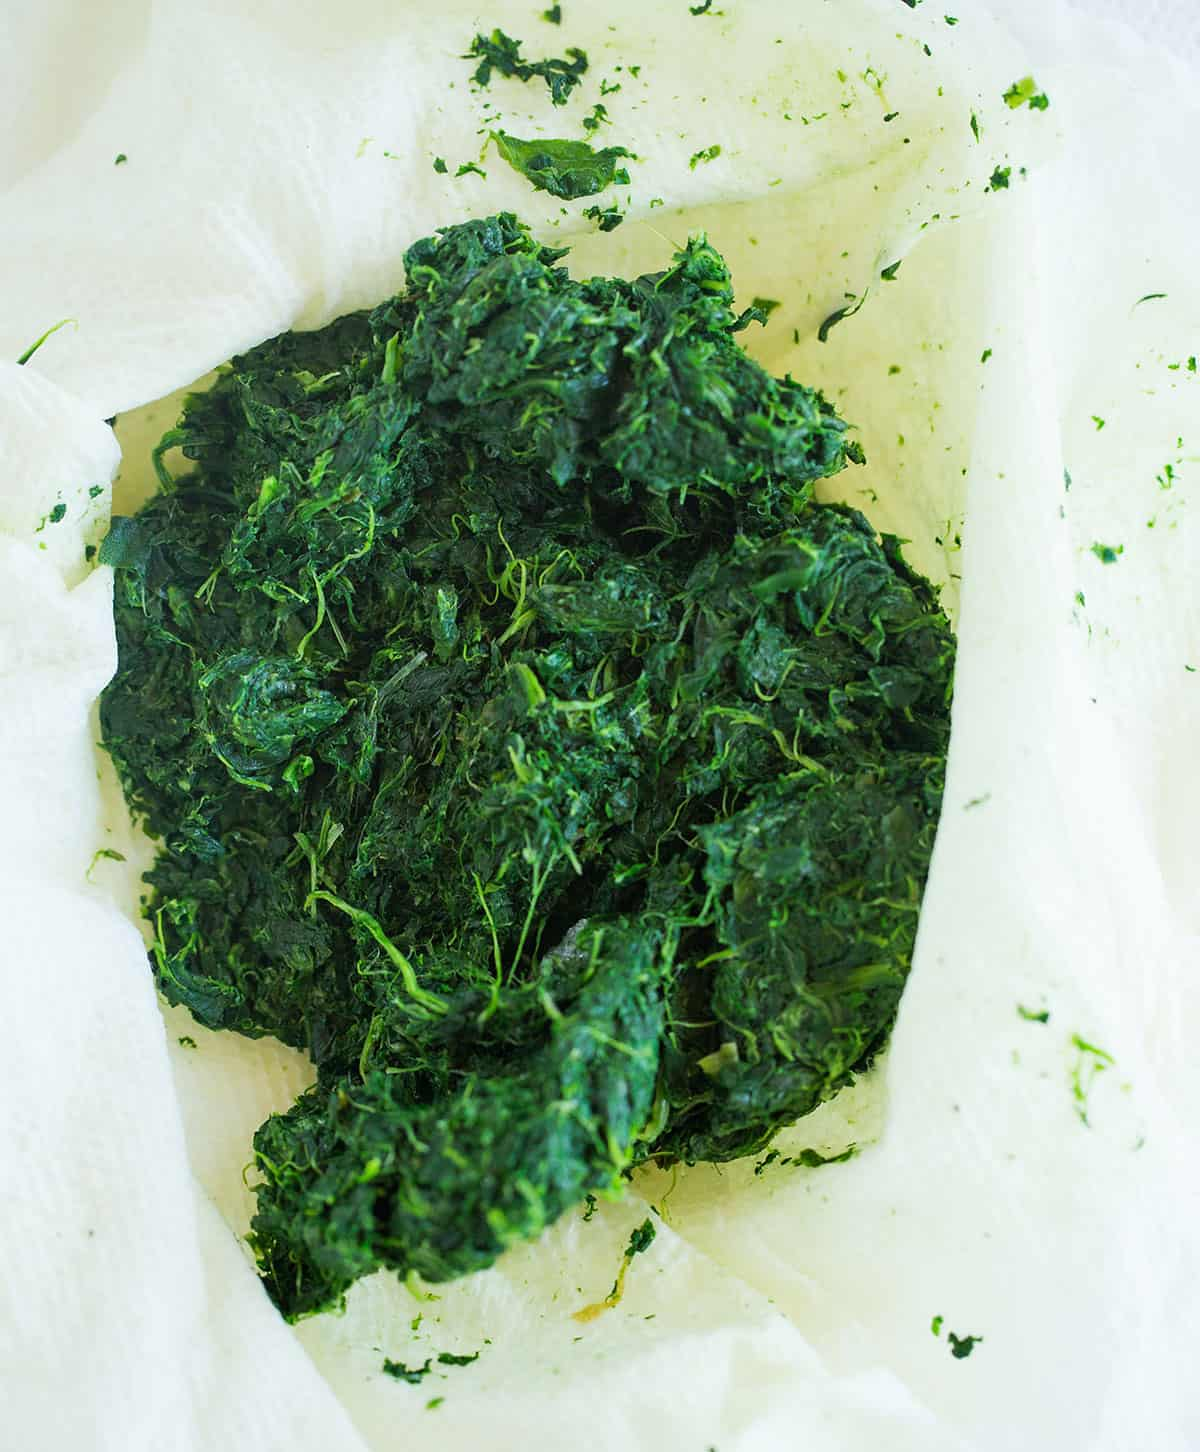 A dish towel with spinach after draining the moisture in a towel.